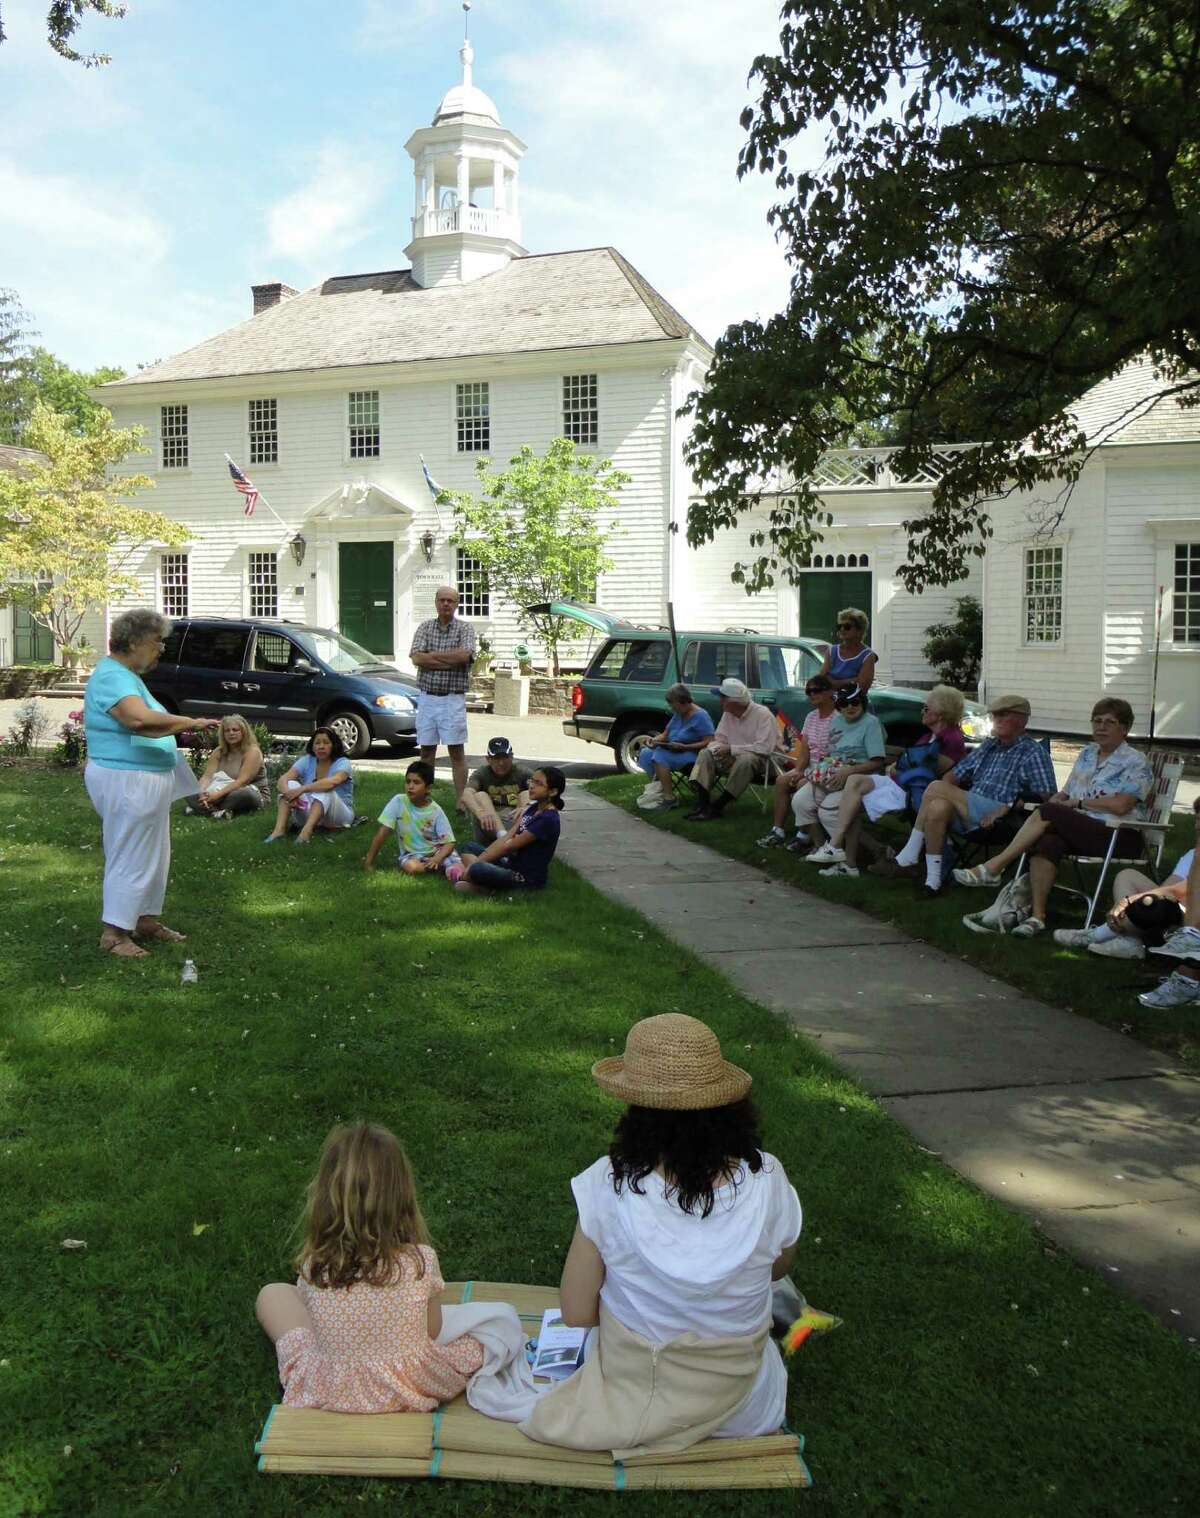 A second part of Betty Oderwald's presentation on the War of 1812 Sunday took place on the green in front of the old Town Hall, where she talked about the peace treaty that ended the conflict. Residents of Fairfield celebrated on the green in February 1815 with music, dancing and an ox roast.